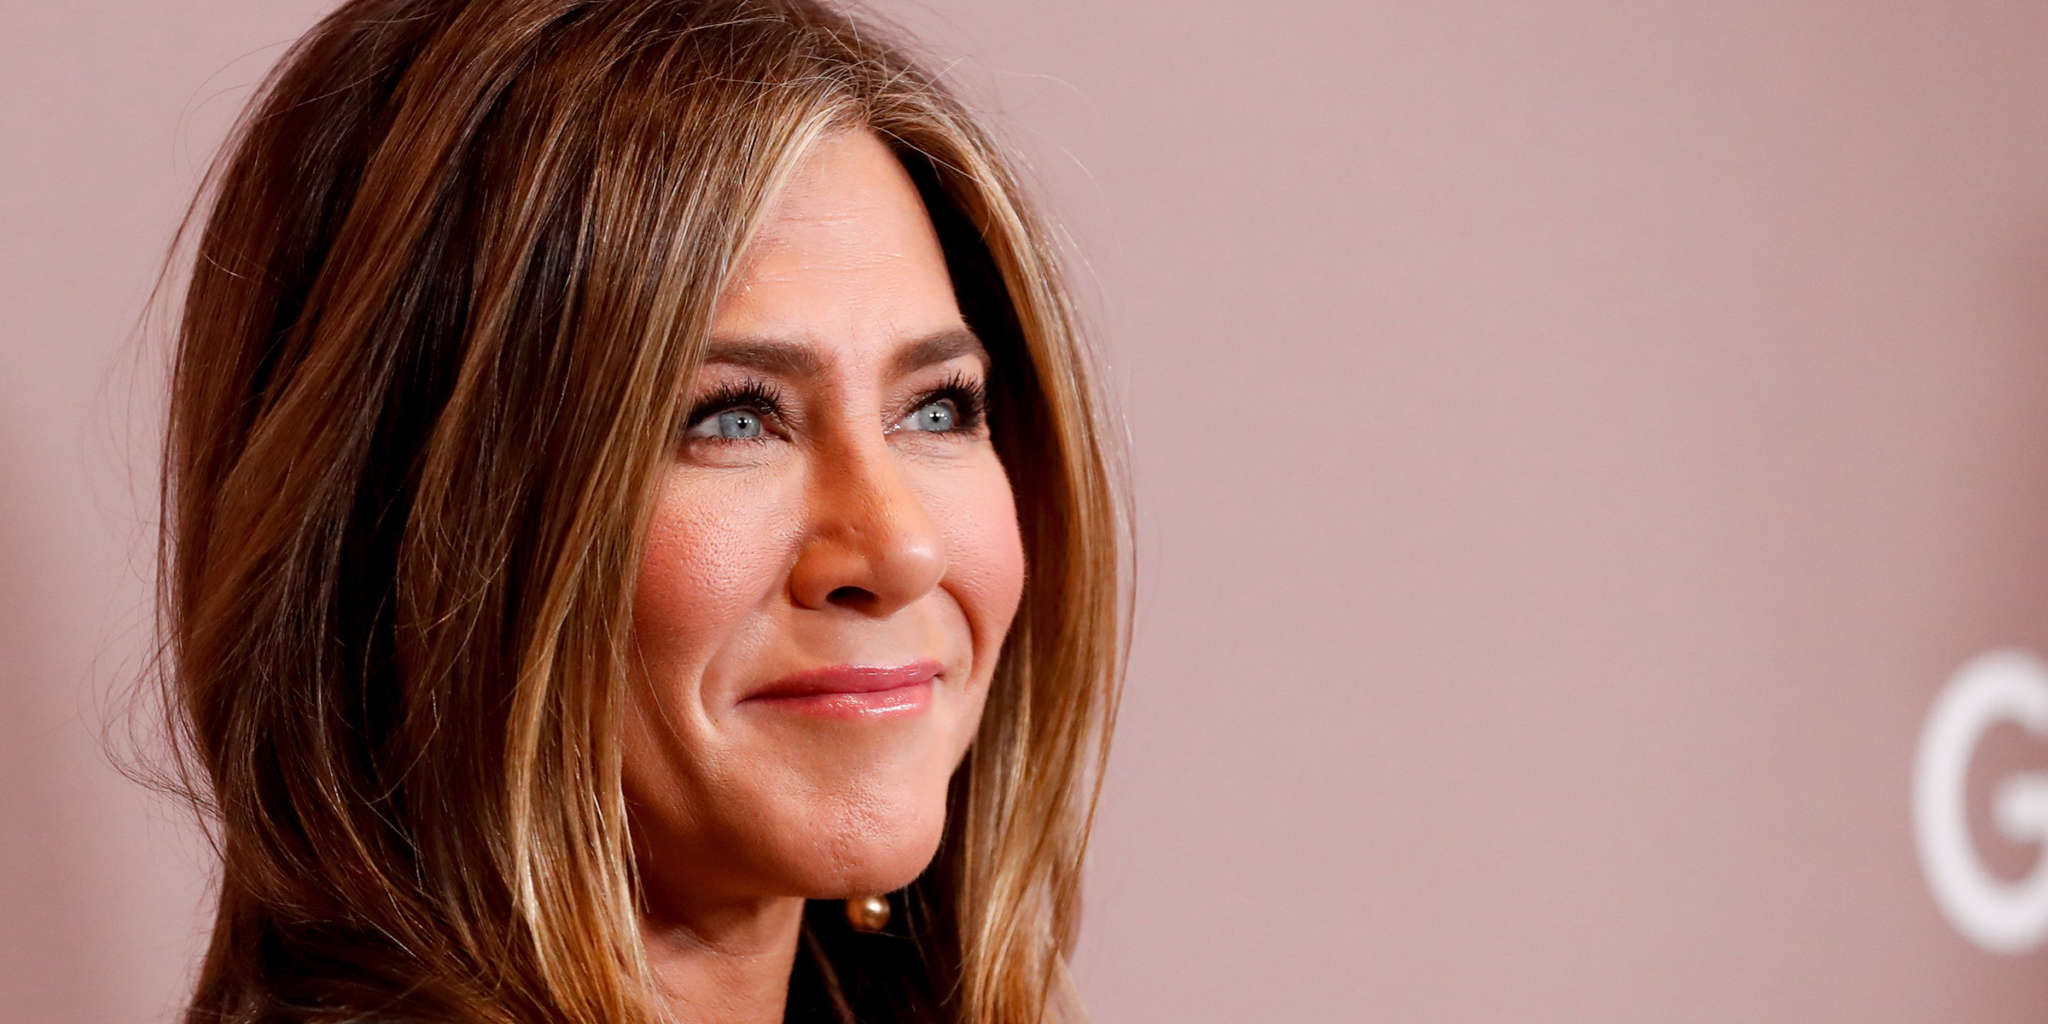 jennifer-aniston-talks-living-into-her-100s-and-how-she-plans-to-remain-vibrant-and-thriving-even-then